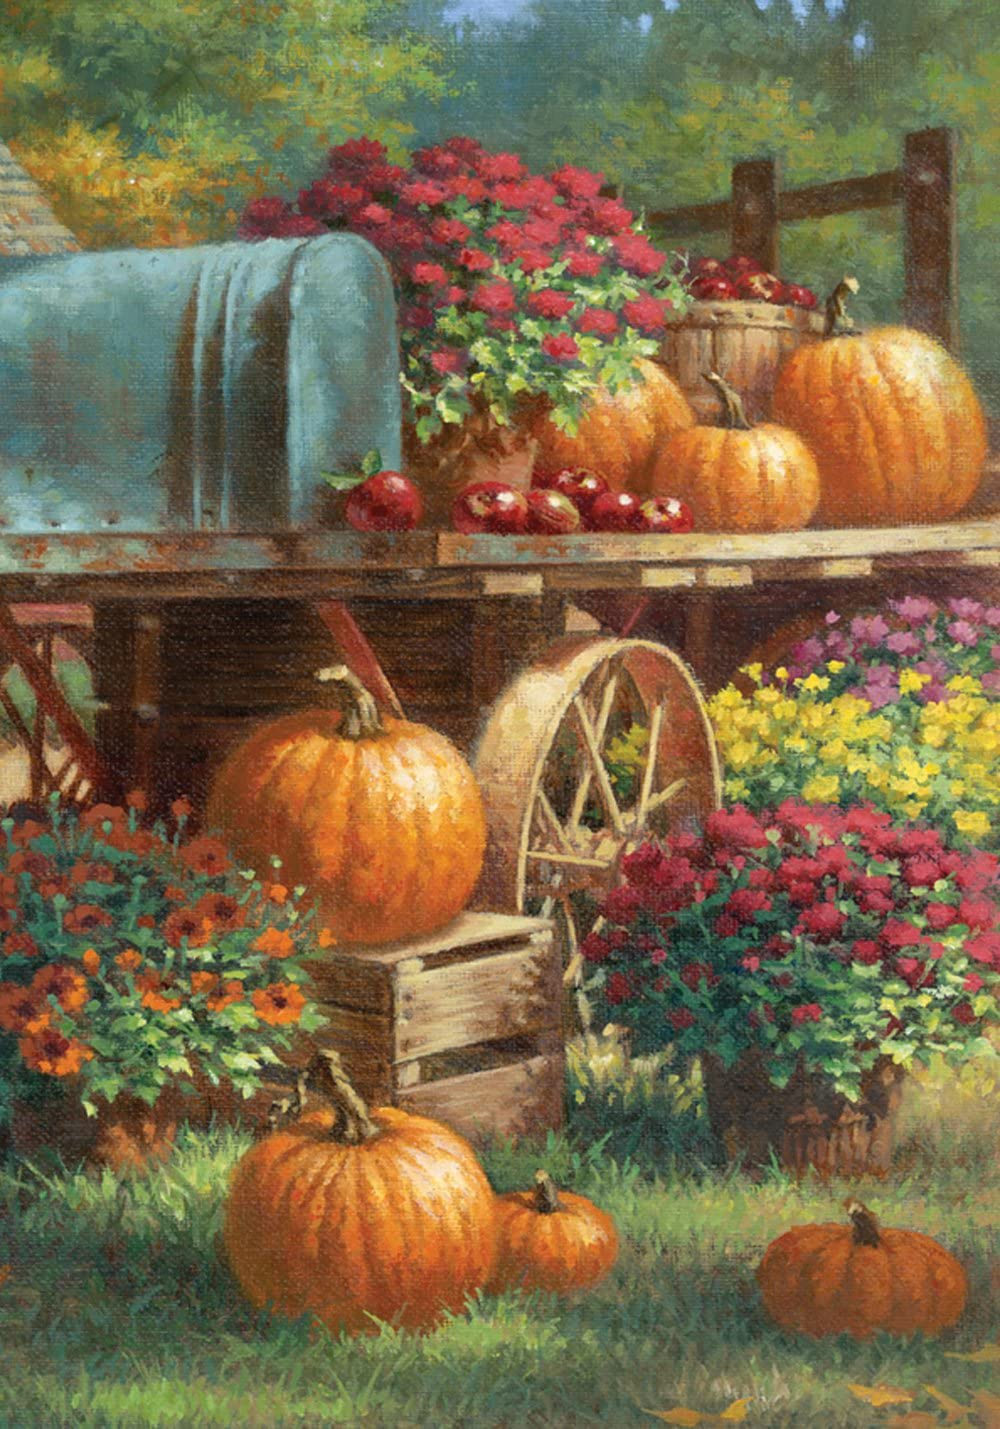 Toland Home Garden Farm Pumpkin 28 x 40 Inch Decorative Rustic Fall Autumn Harvest Flower House Flag - 109419